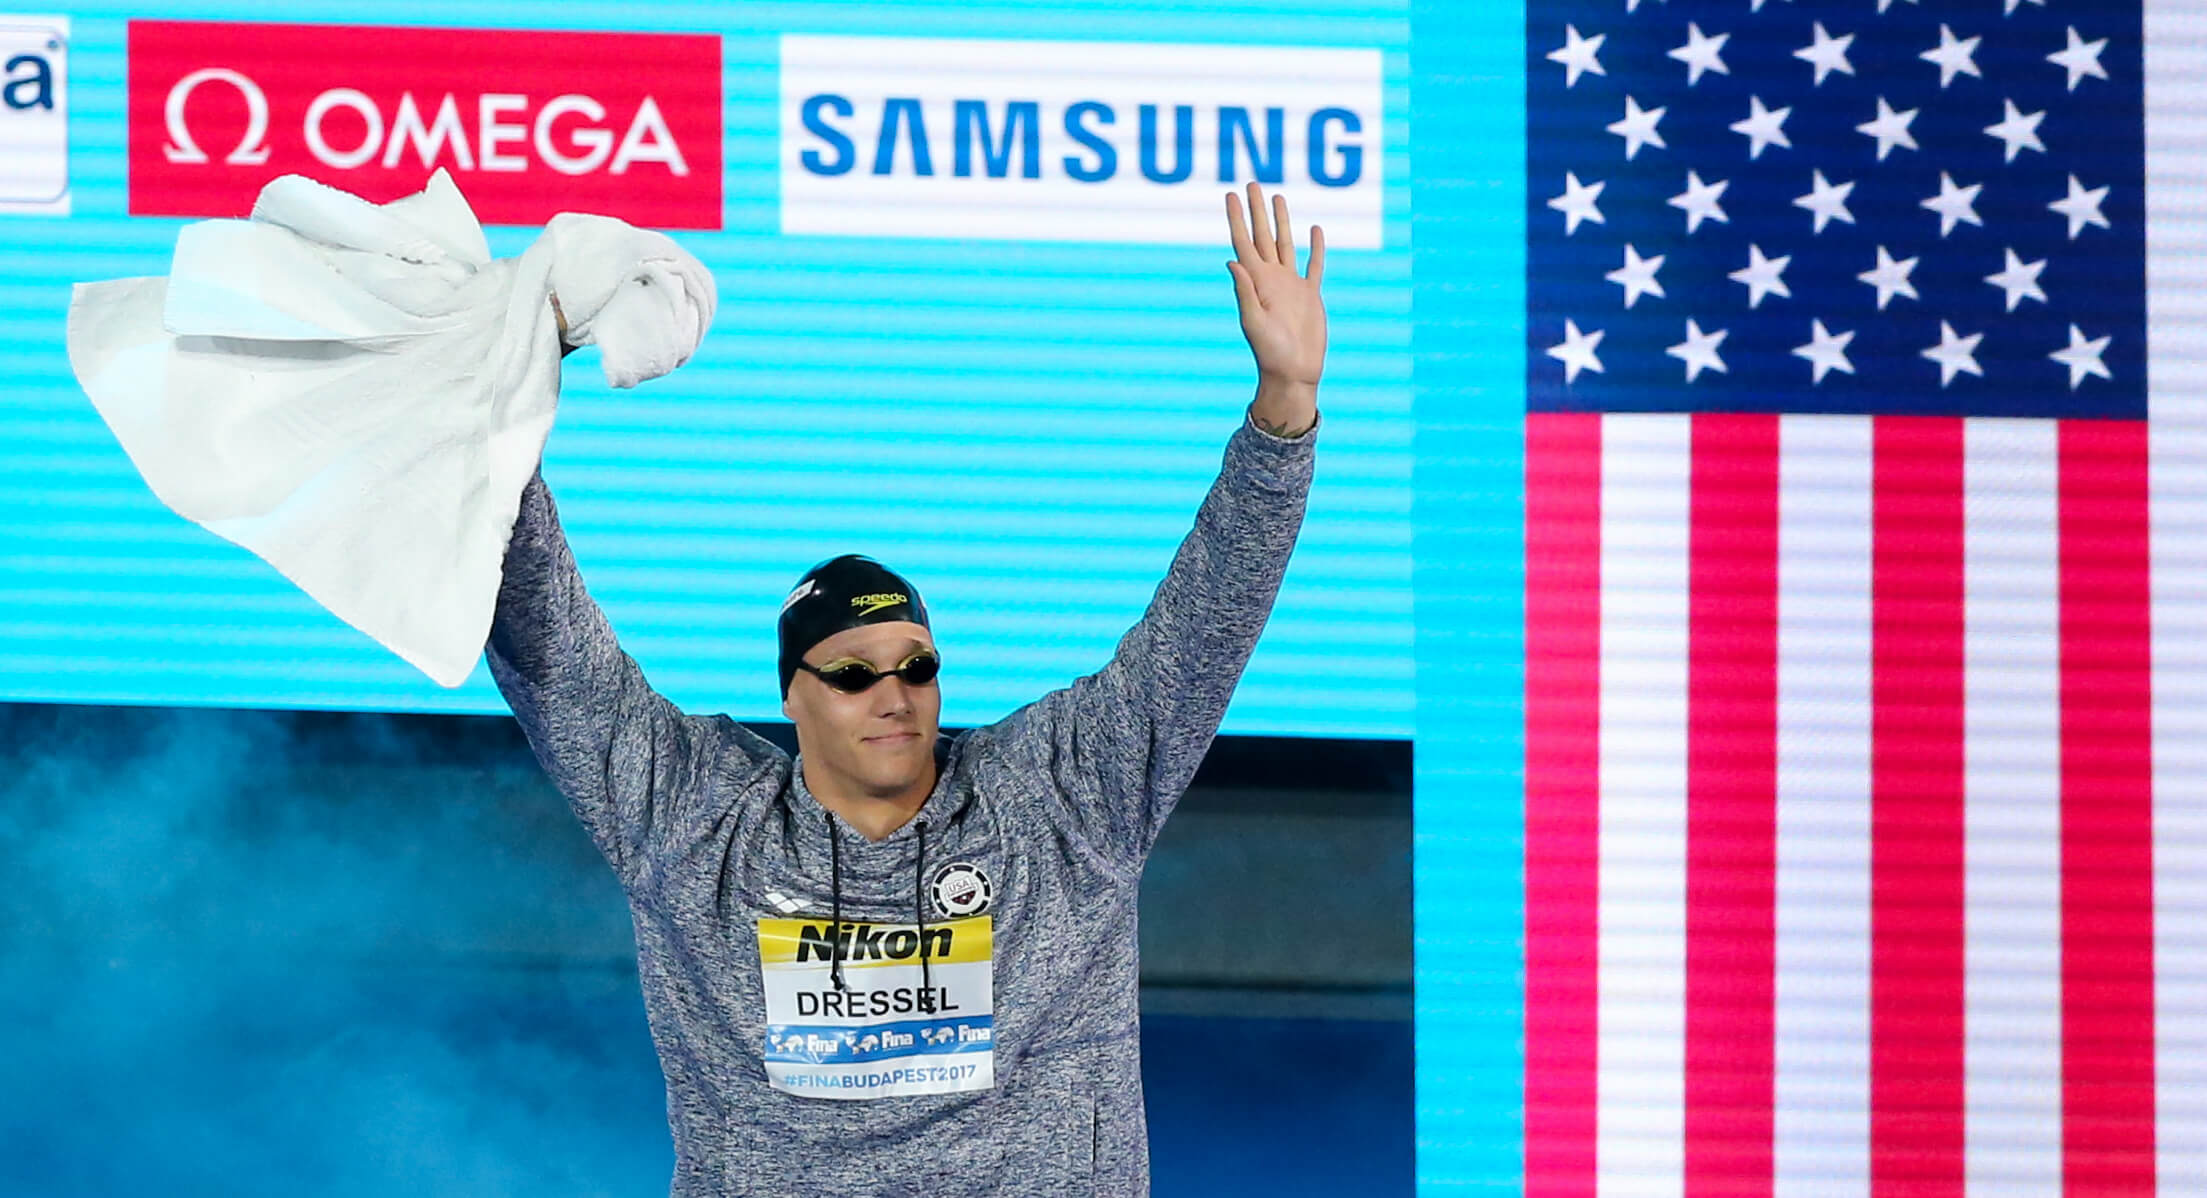 caeleb-dressel-usa-flag-hands-up-towel-2017-world-champs